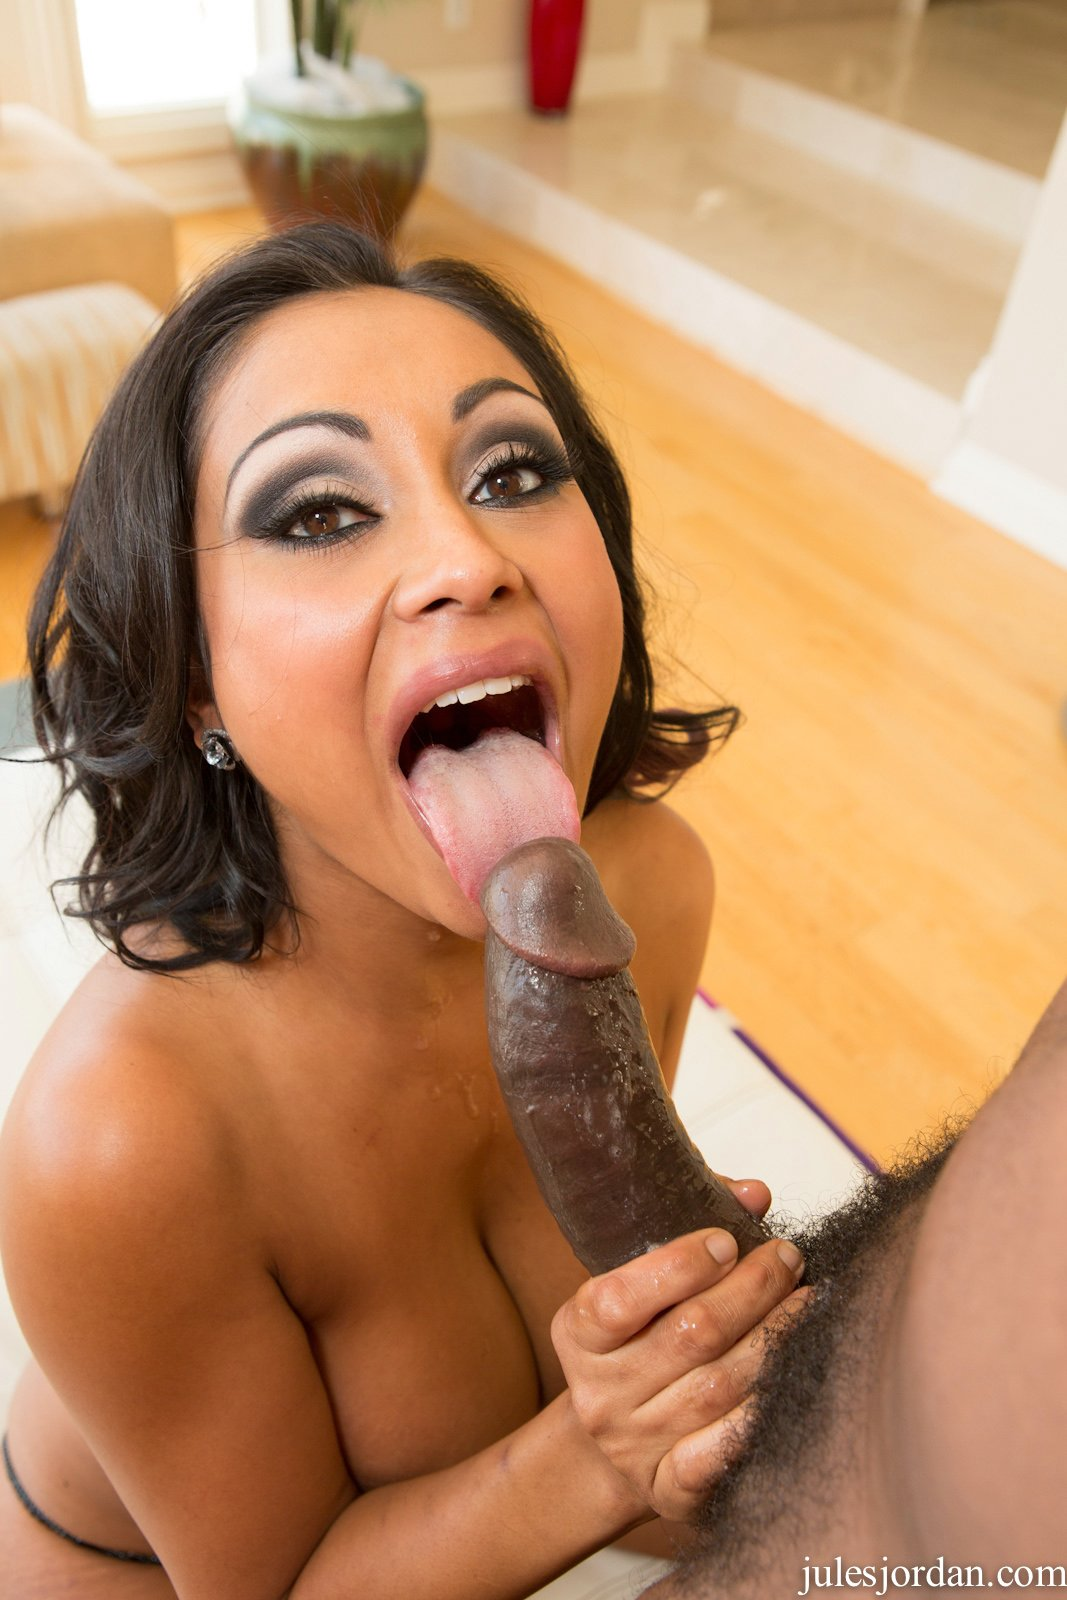 Can recommend Priya rai pornstar right!